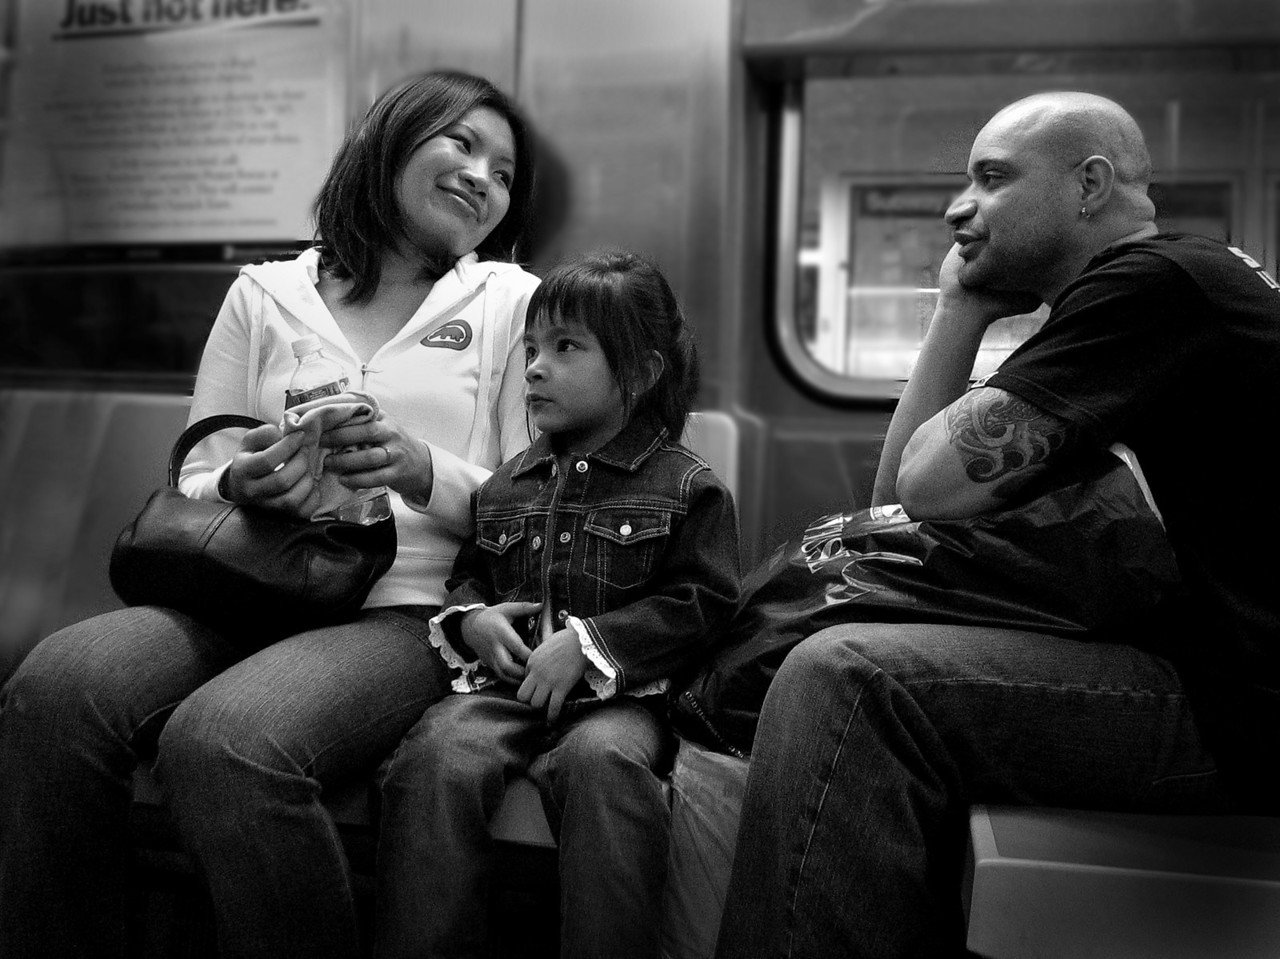 Family Unit- New York City- You can see the love.